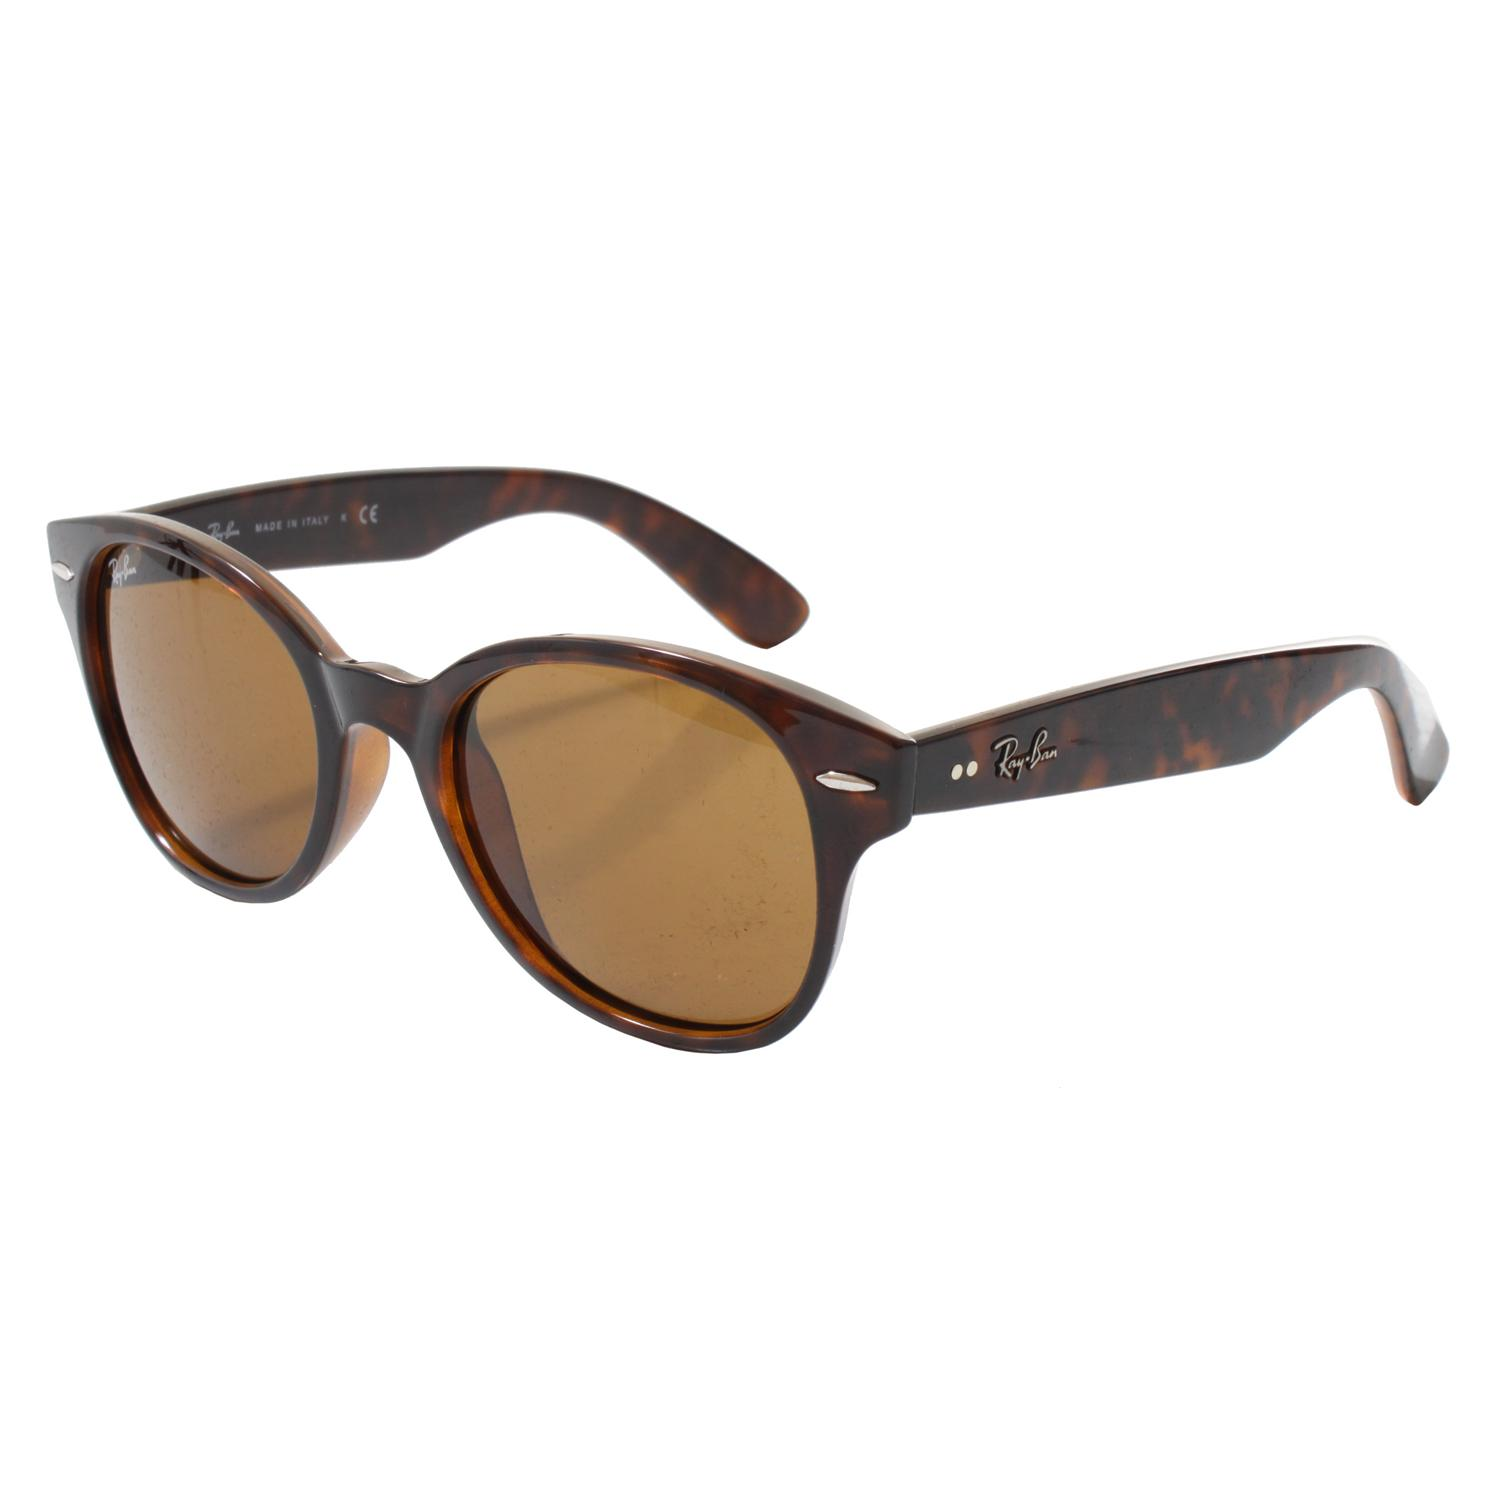 a4f4af14849 Ray Ban Lens Differences « Heritage Malta